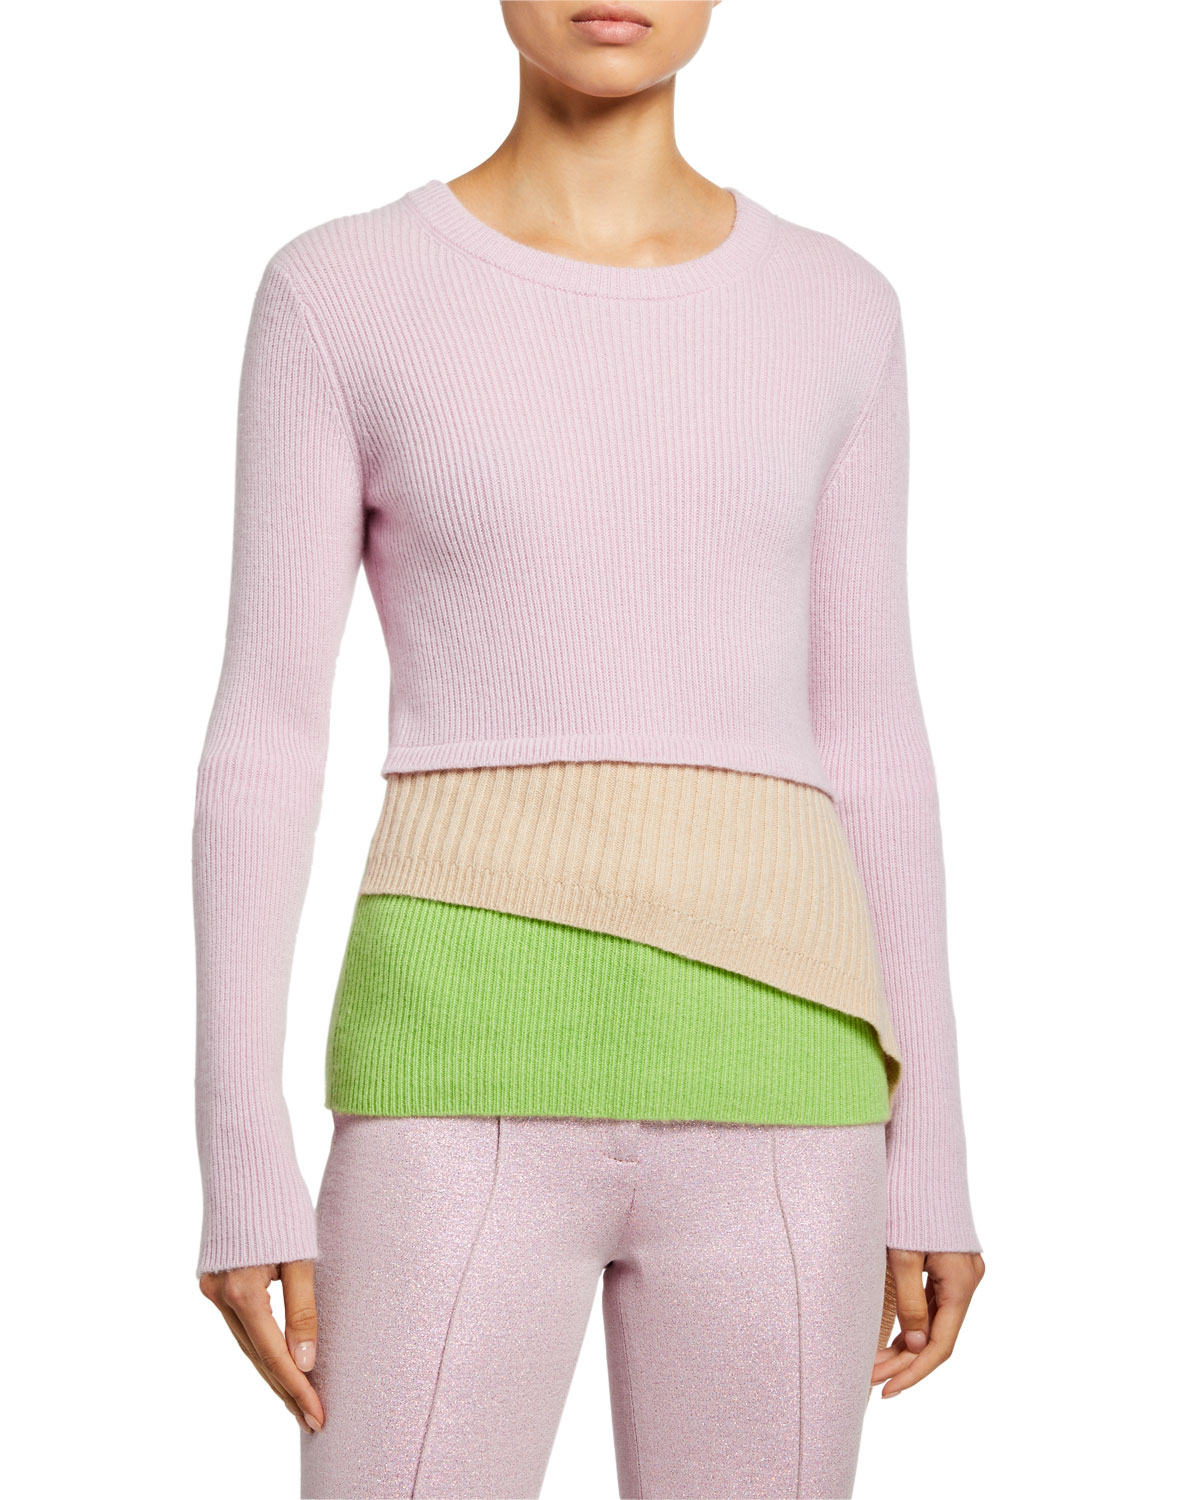 Sies Marjan Sweaters WOOL-CASHMERE ASYMMETRIC LAYERED SWEATER